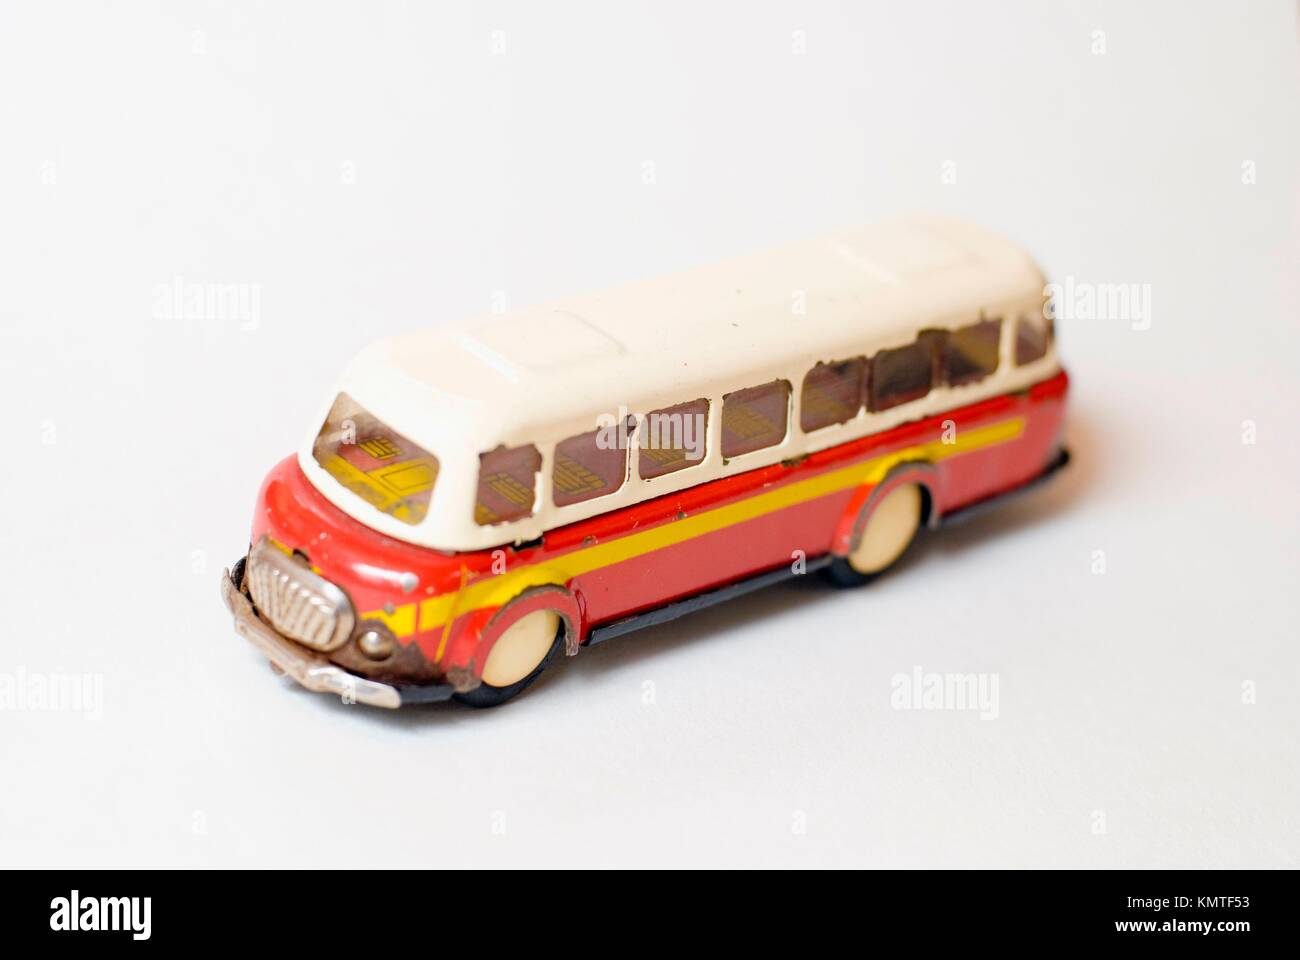 toy - model of antique bus - Stock Image